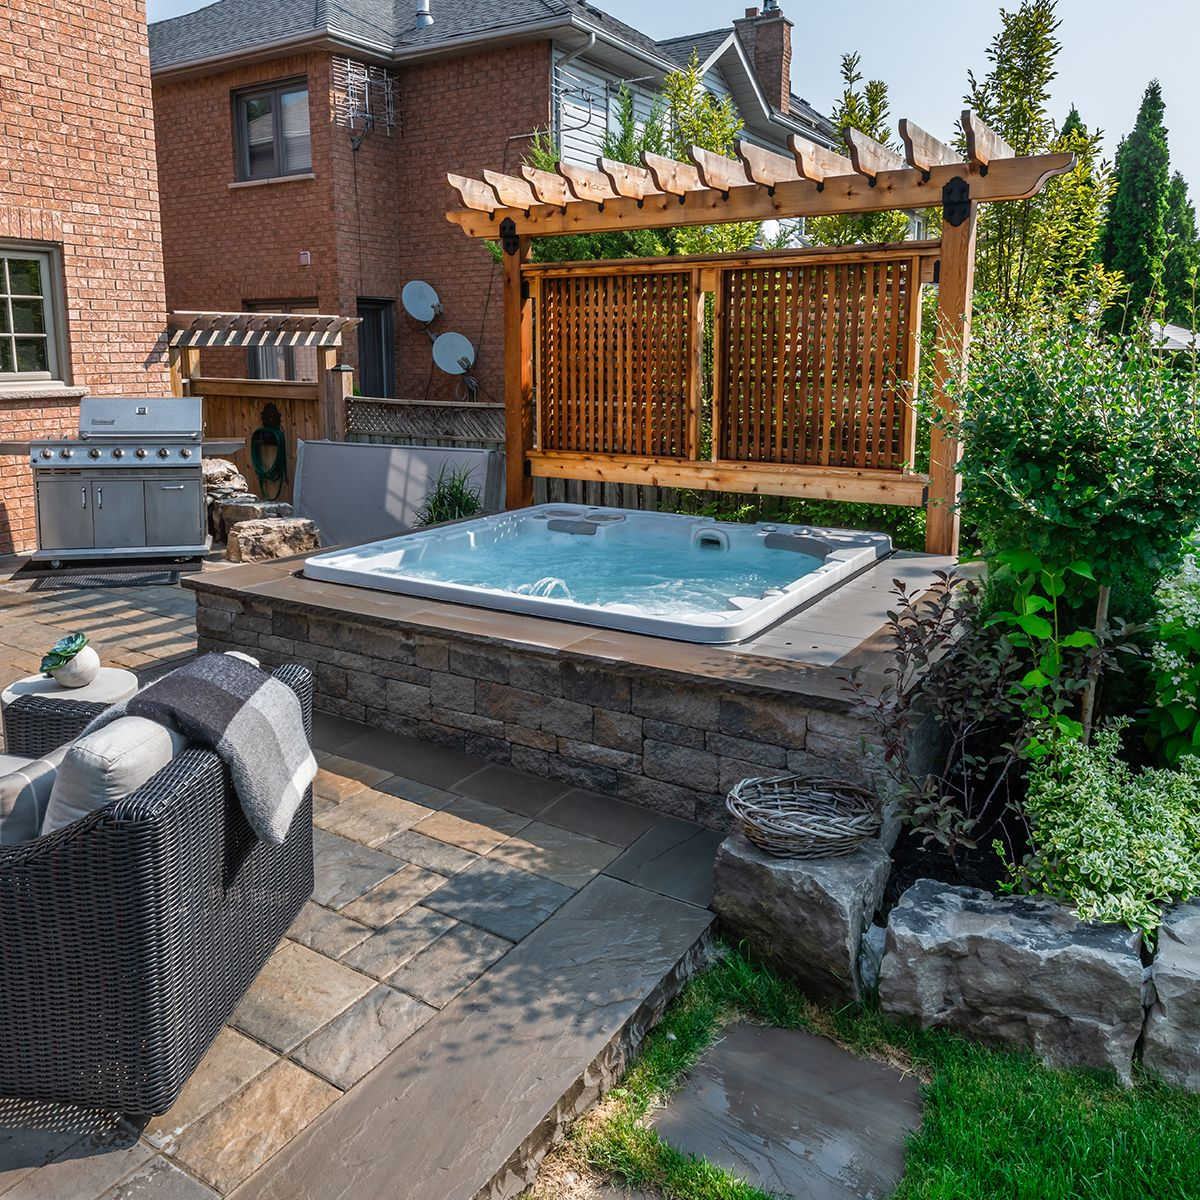 Hot Tub With Stone Wall Hot Tub Patio Hot Tub Outdoor Hot Tub Landscaping